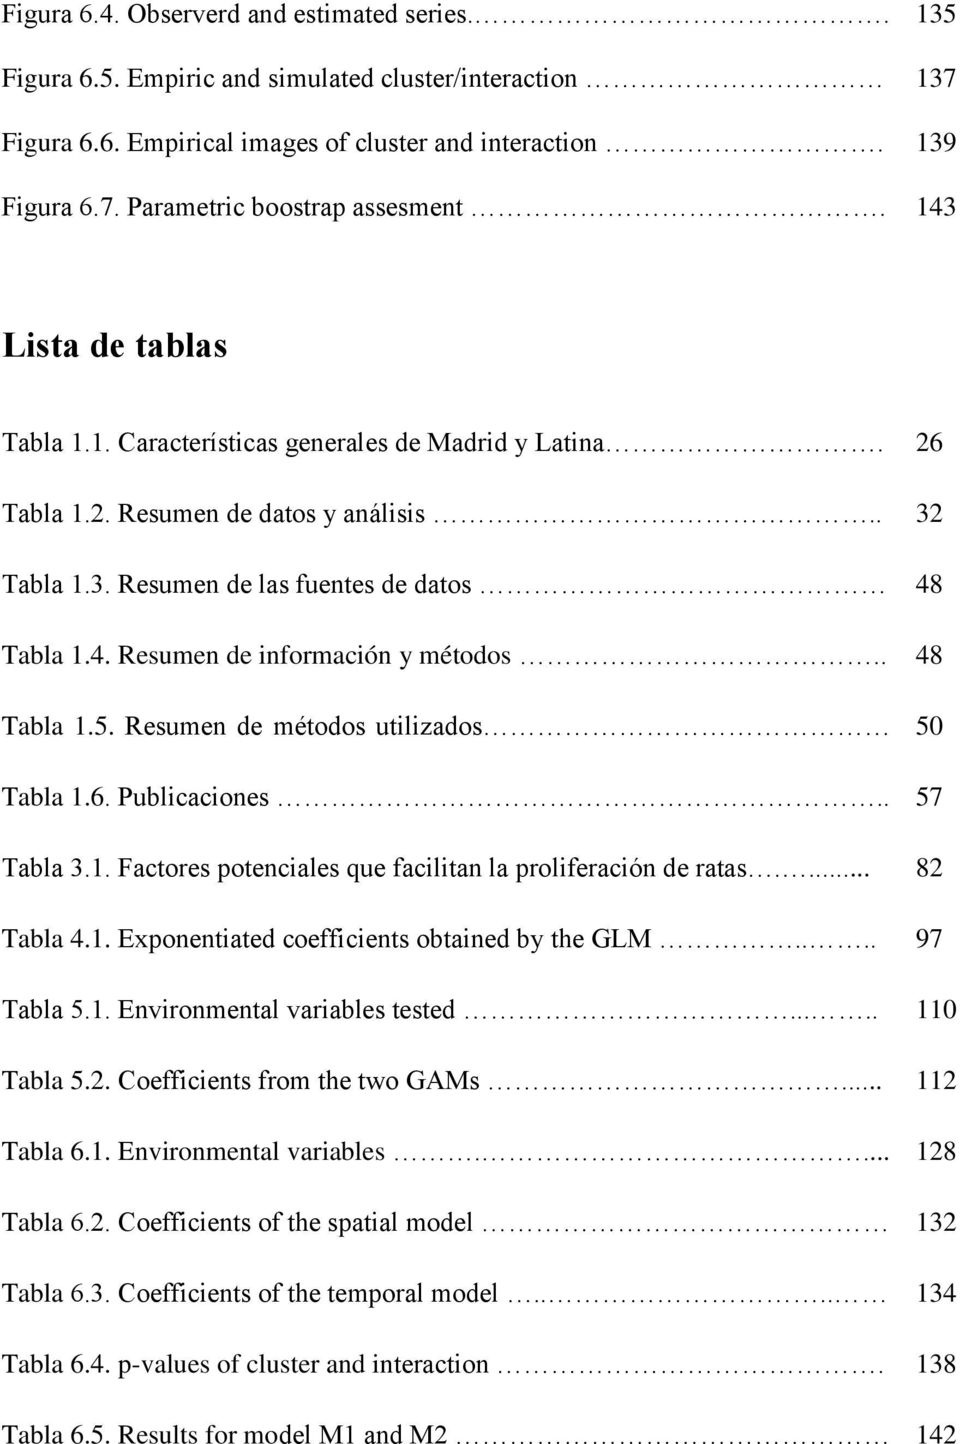 . 48 Tabla 1.5. Resumen de métodos utilizados.. Tabla 1.6. Publicaciones.. 57 50 Tabla 3.1. Factores potenciales que facilitan la proliferación de ratas.... 82 Tabla 4.1. Exponentiated coefficients obtained by the GLM.